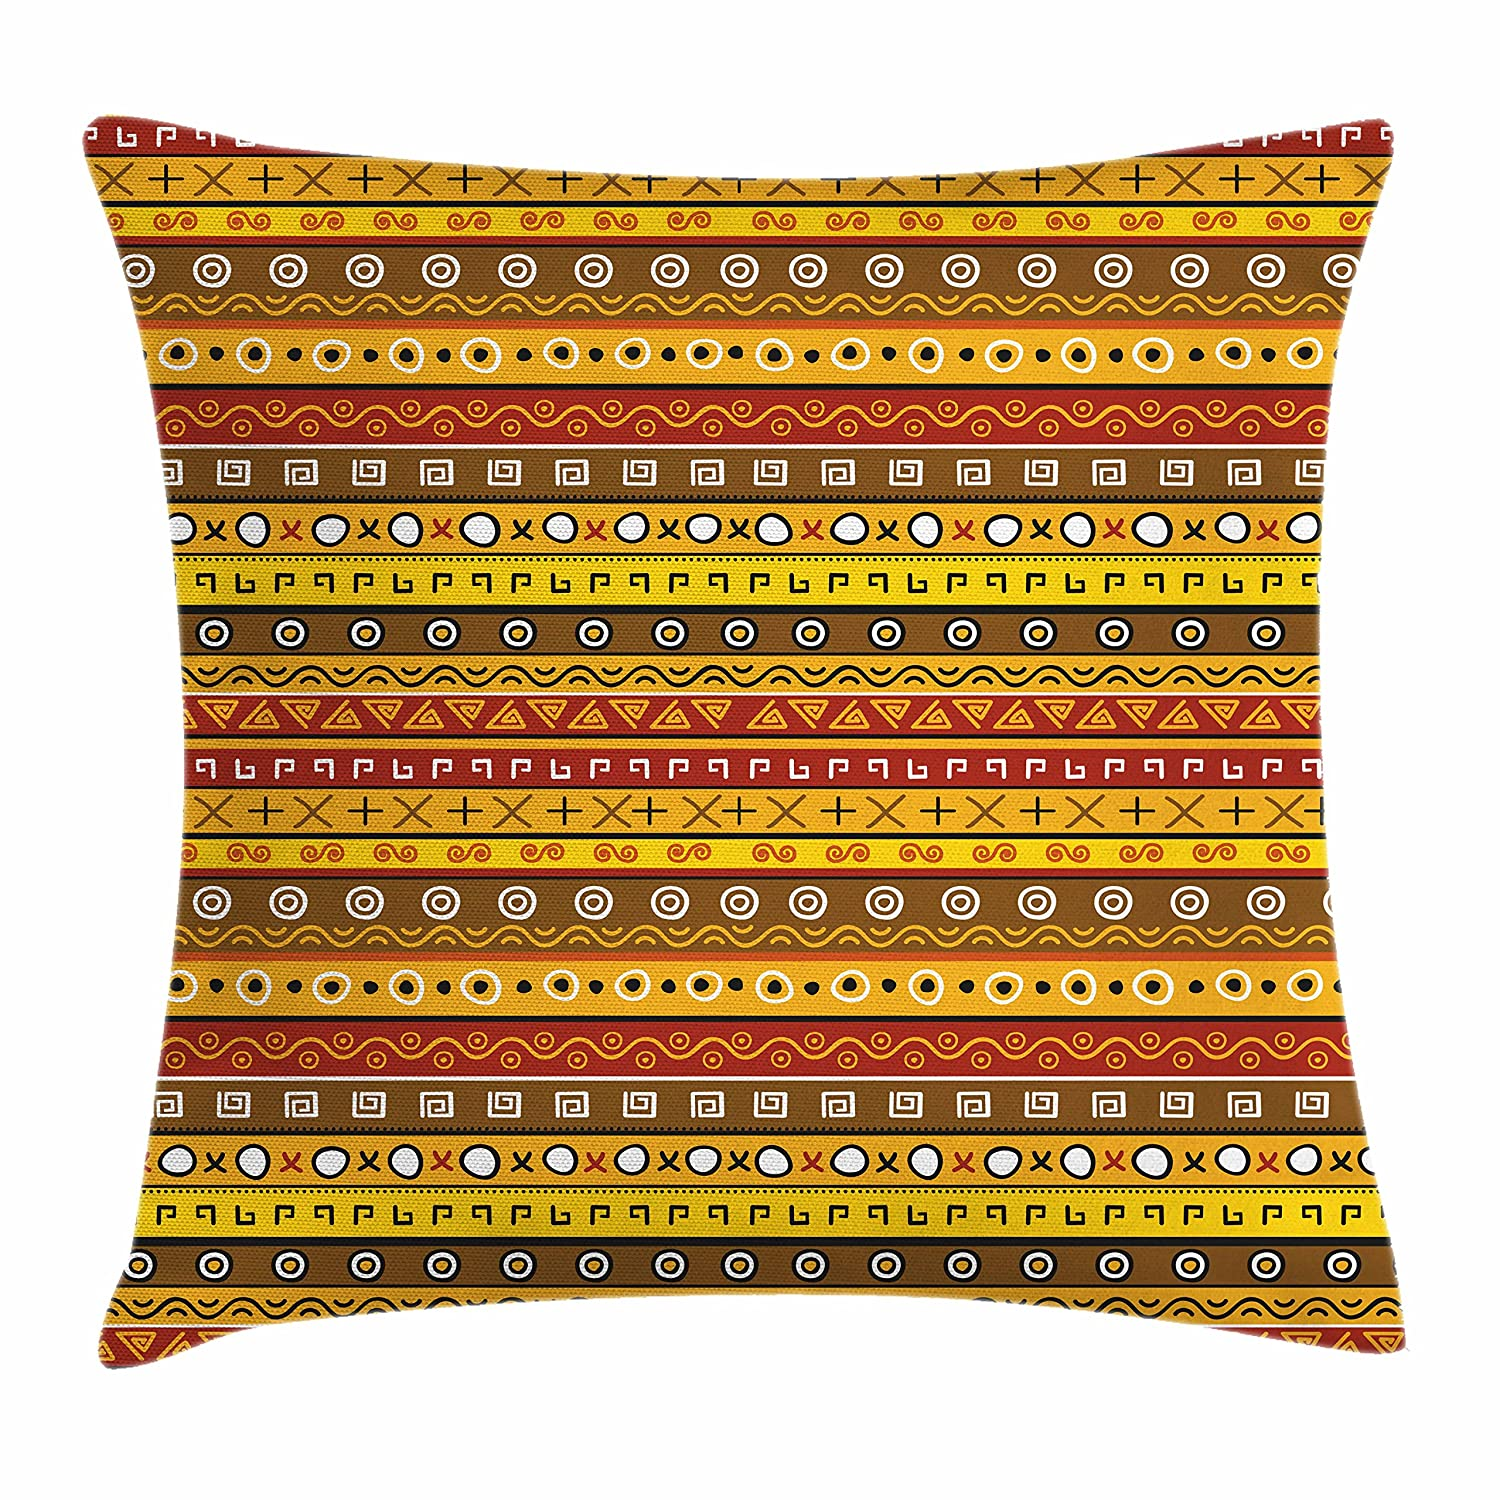 Decorative Square Accent Pillow Case 16 X 16 Inches Puffers Toadfish Childish Fish Family with Folk Art Patterns Children Nursery Decor Ambesonne Funny Decor Throw Pillow Cushion Cover Multi min/_18492/_16x16